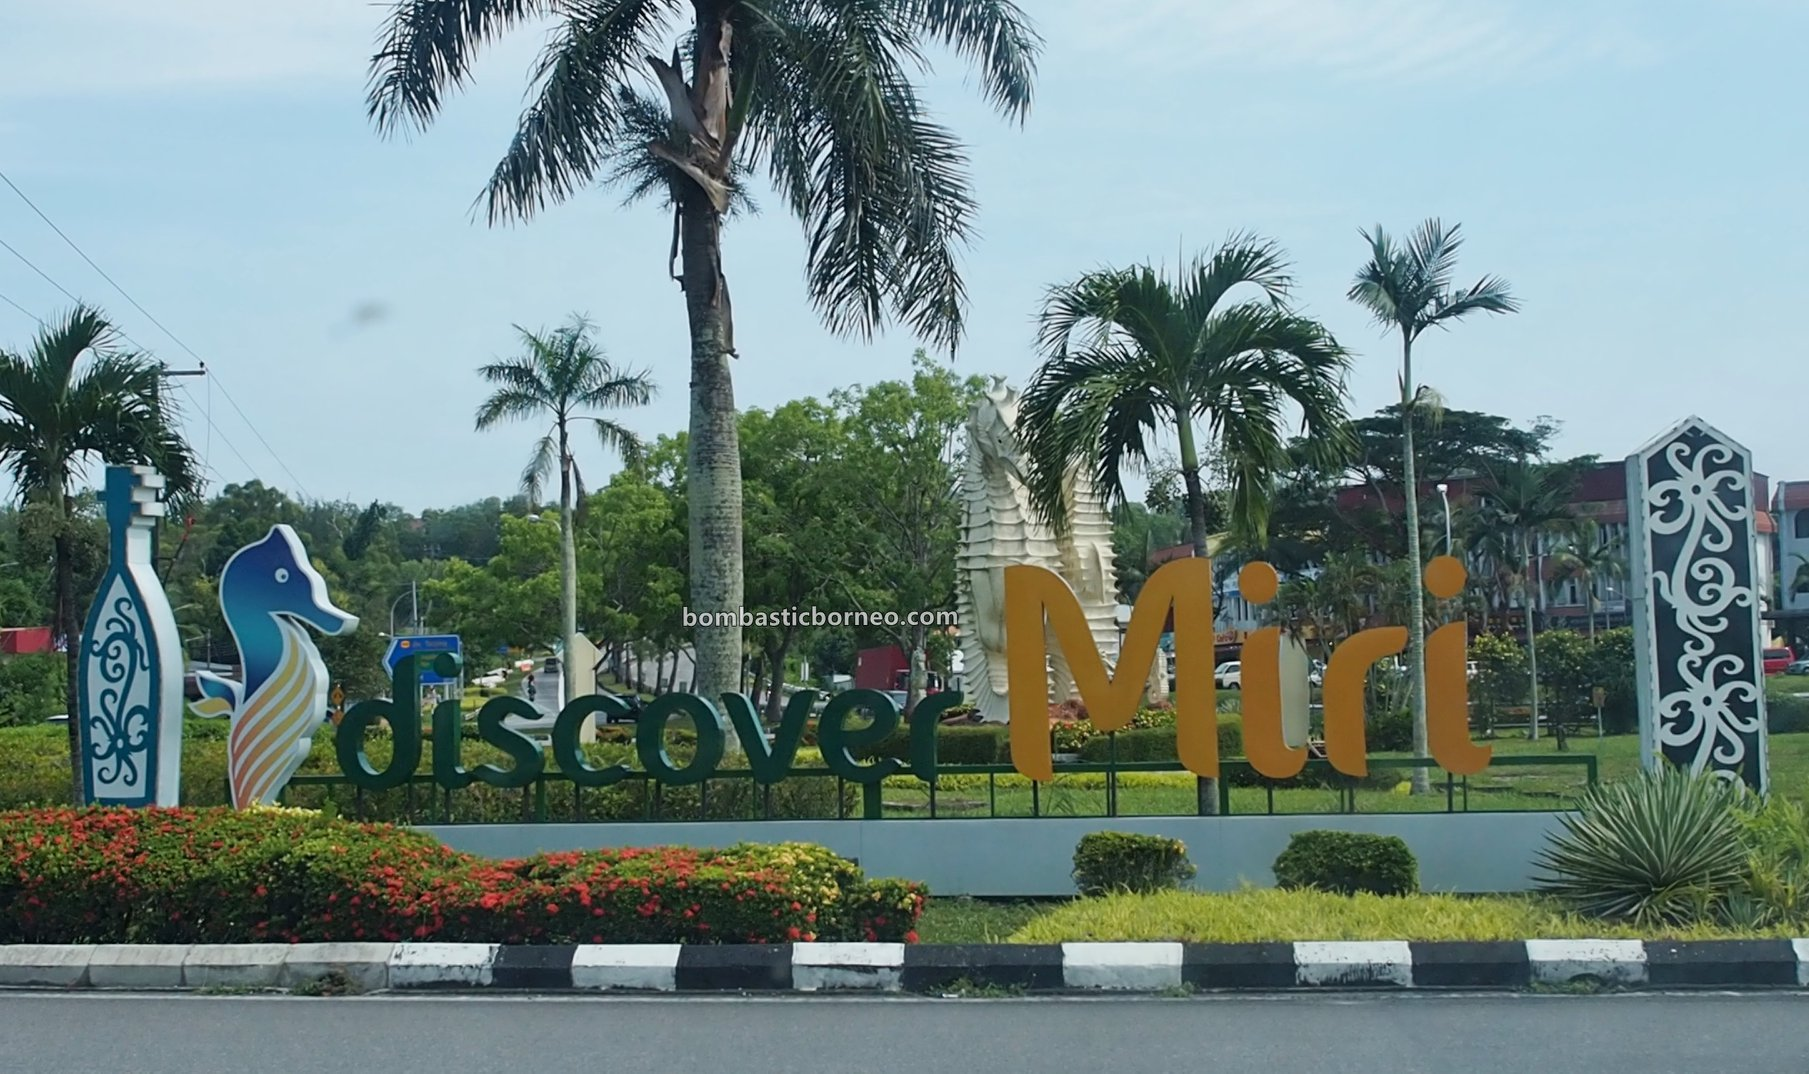 backpackers, destination, Miri waterfront, Seahorse, Tourist attraction, tourism, Trans Borneo, 探索婆罗洲游踪, 马来西亚砂拉越美里